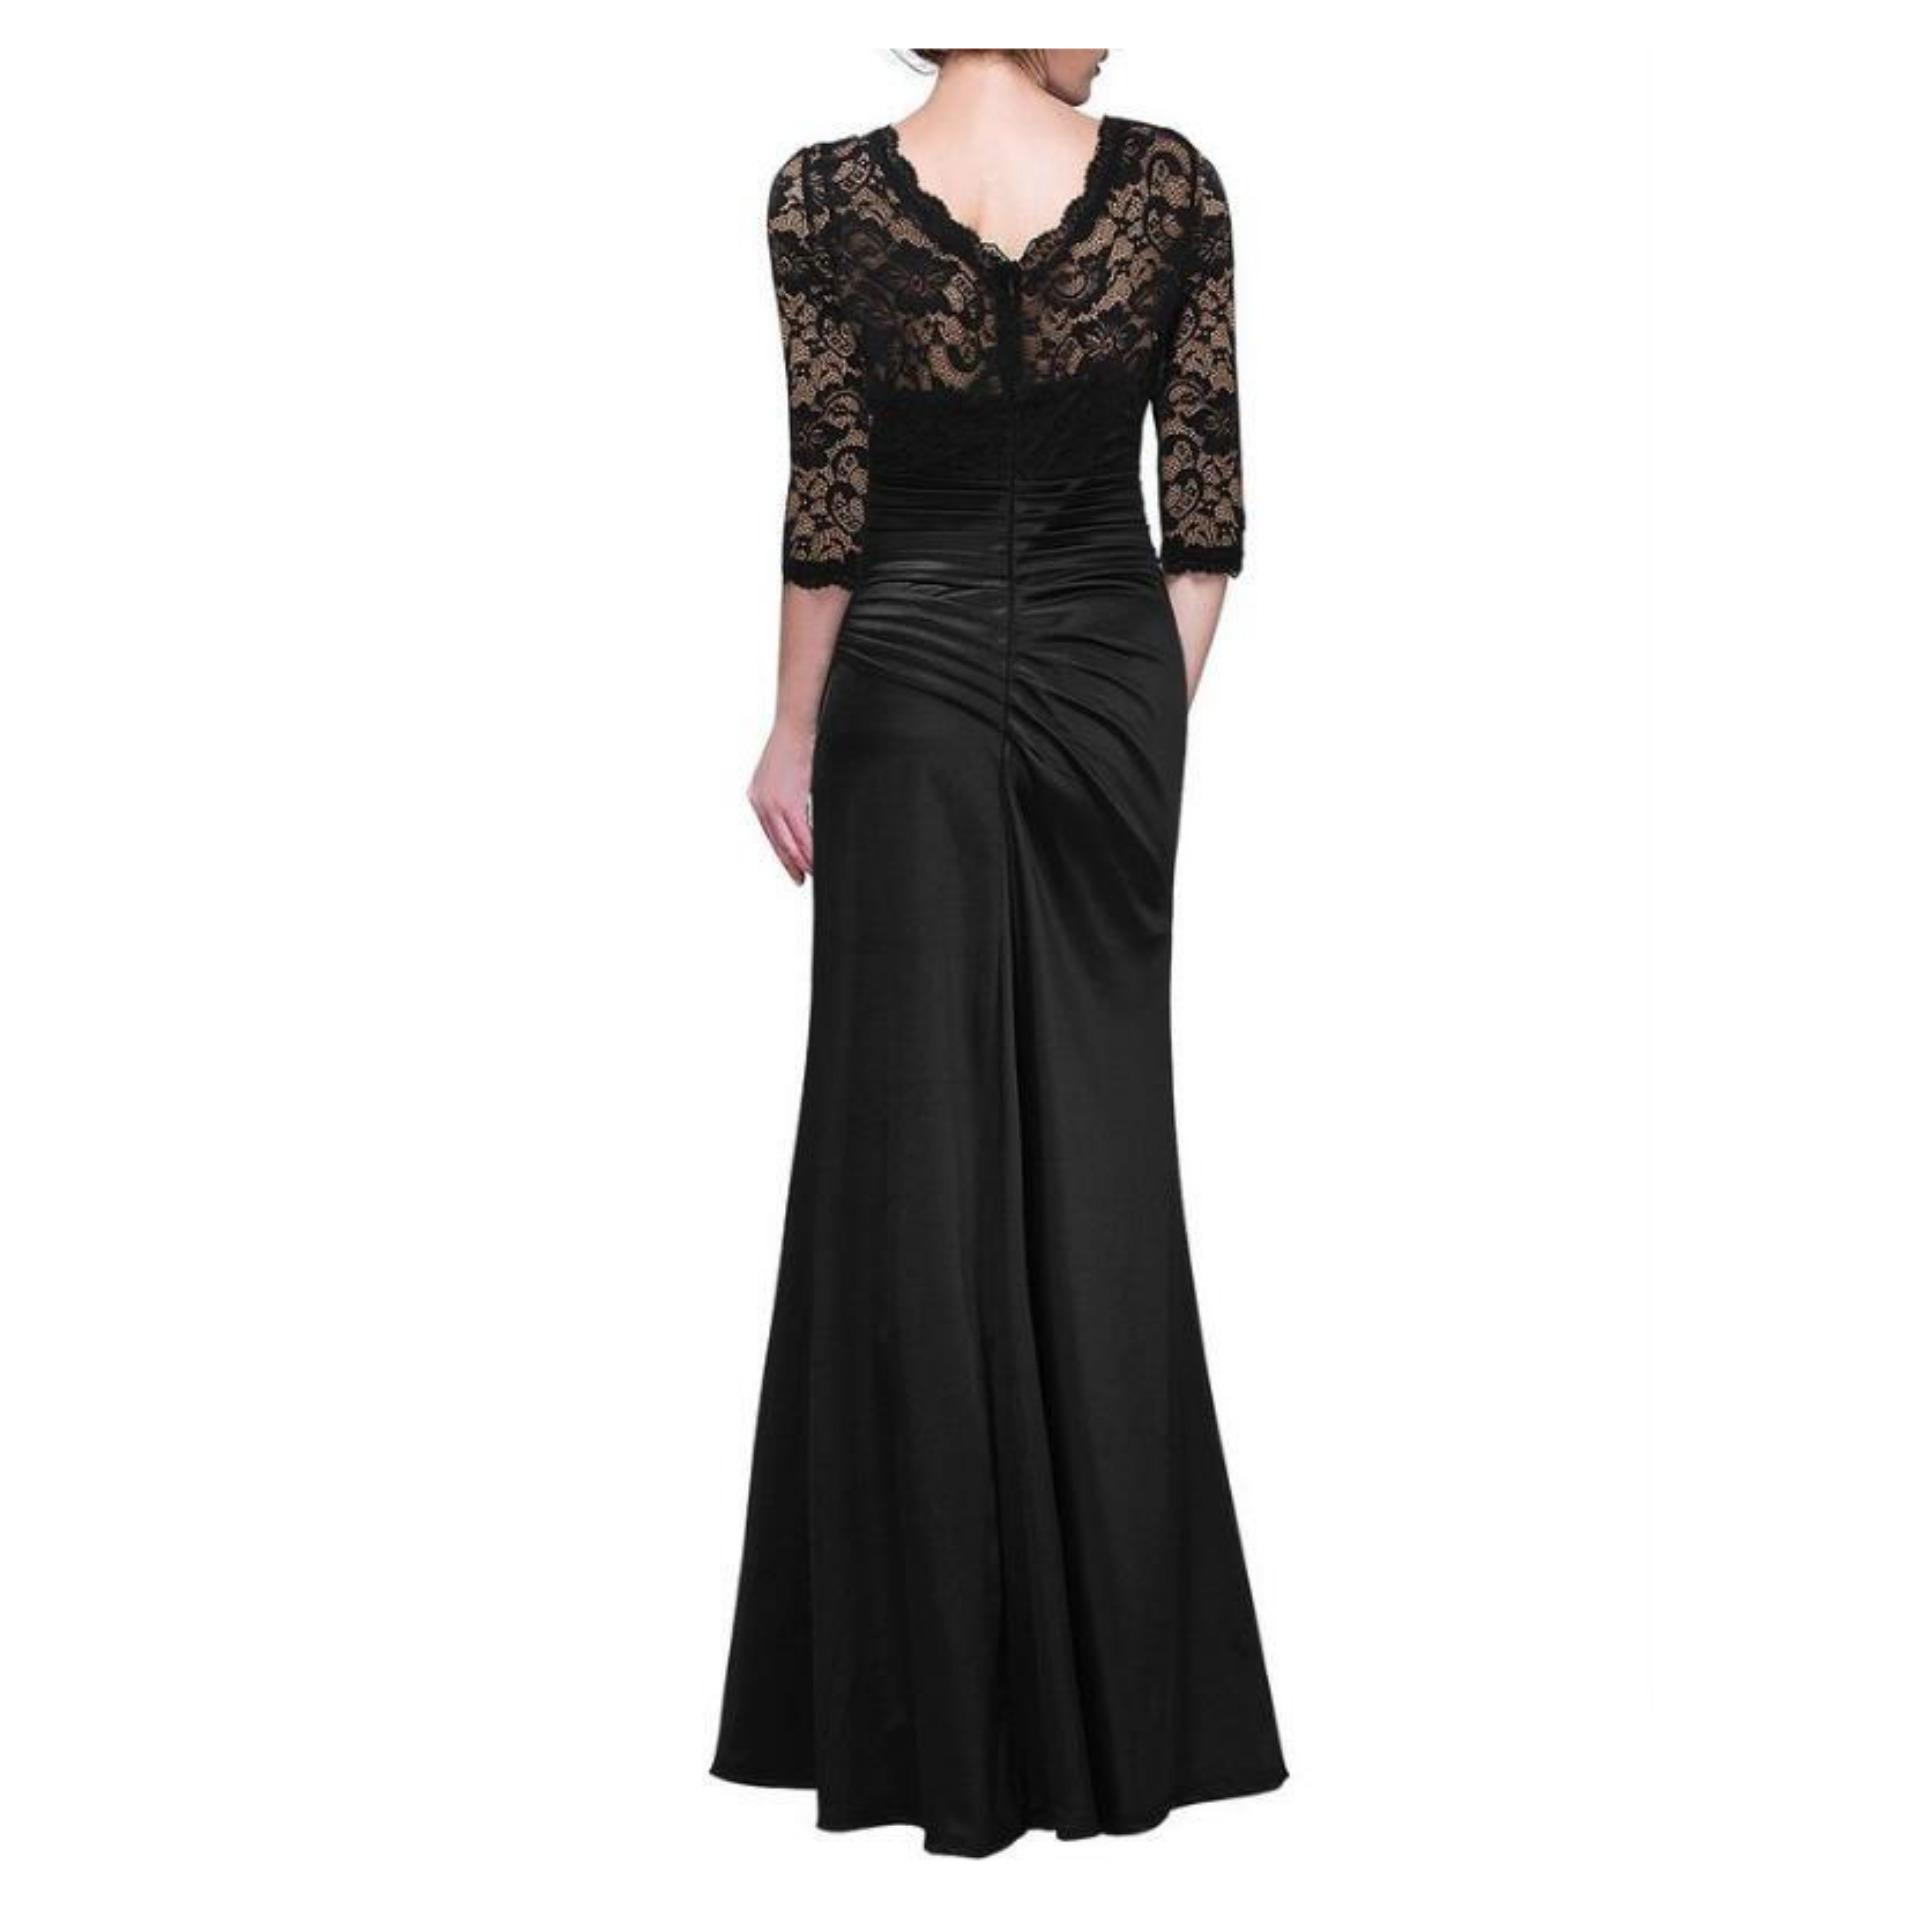 Diskon Penjualan 2017 Woman Winter Long Dress Party Evening Elegant ...